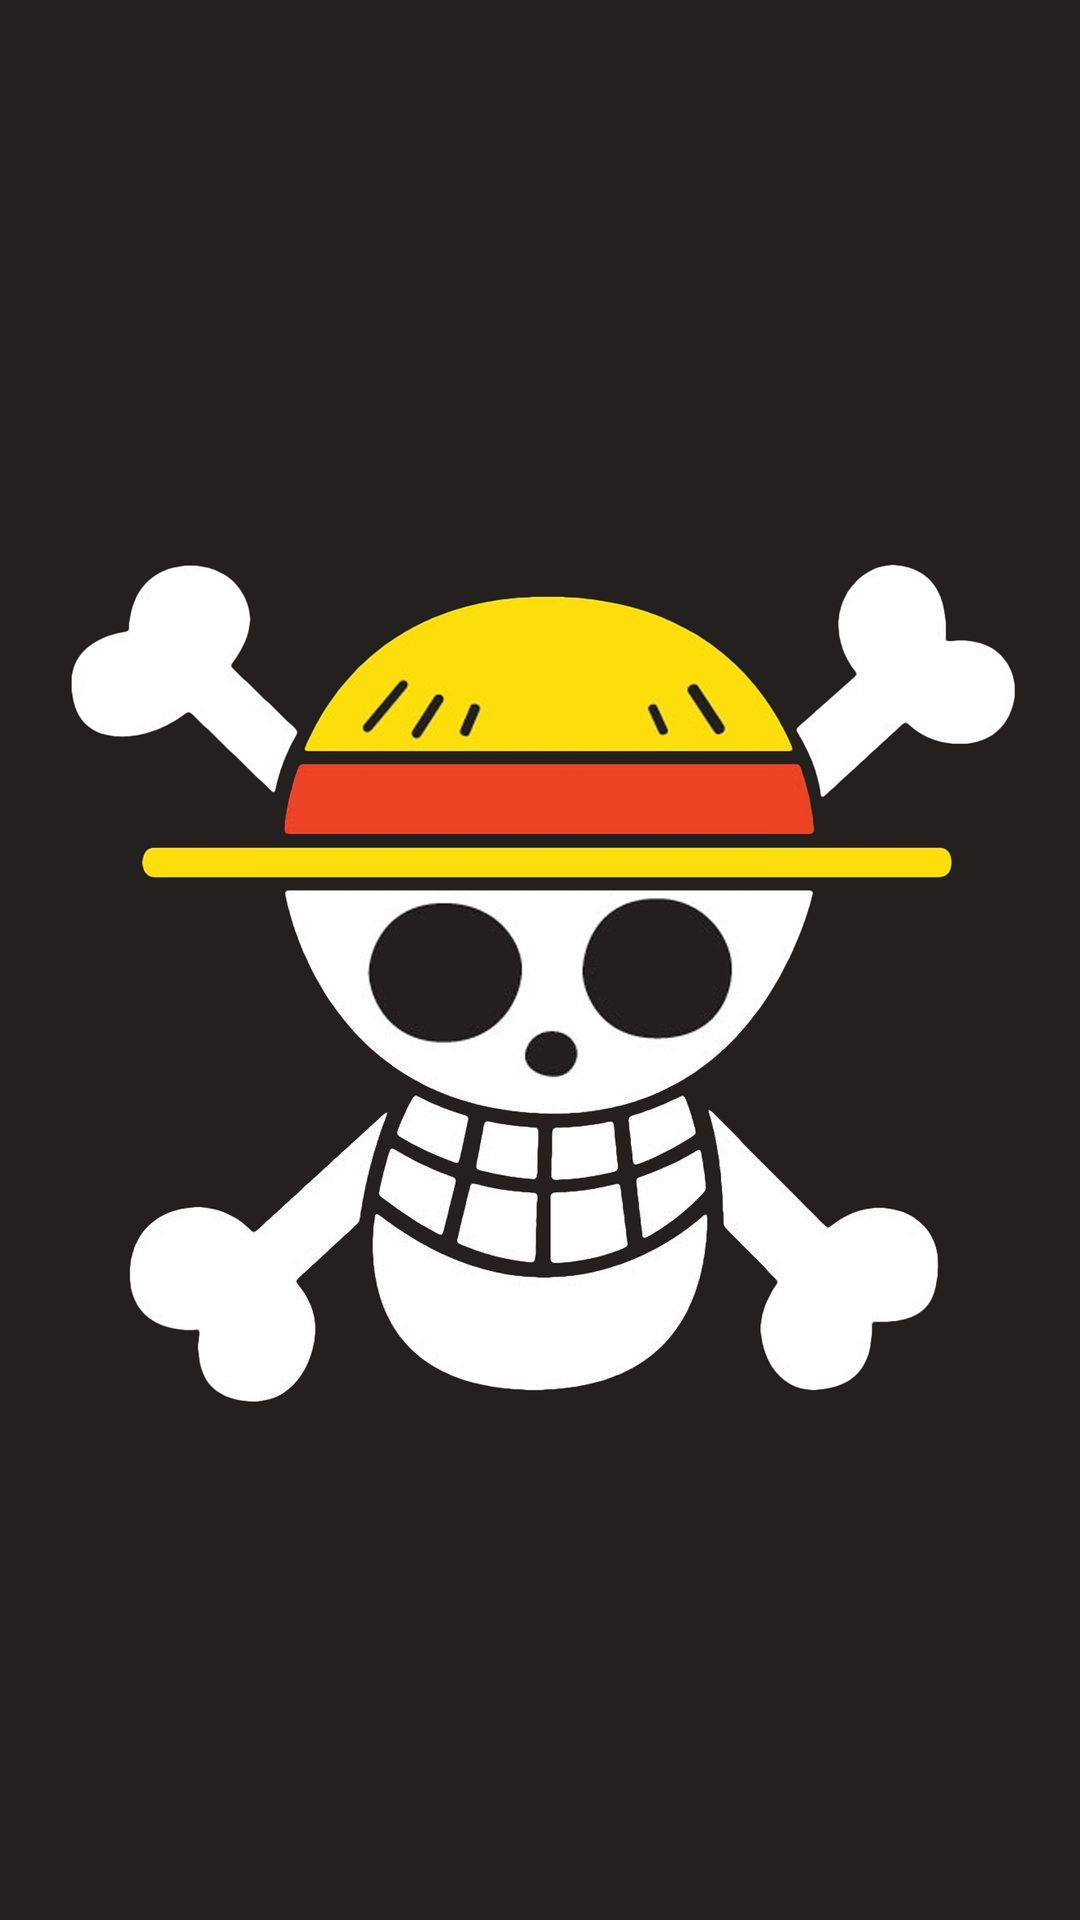 55 One Piece Android Iphone Desktop Hd Backgrounds